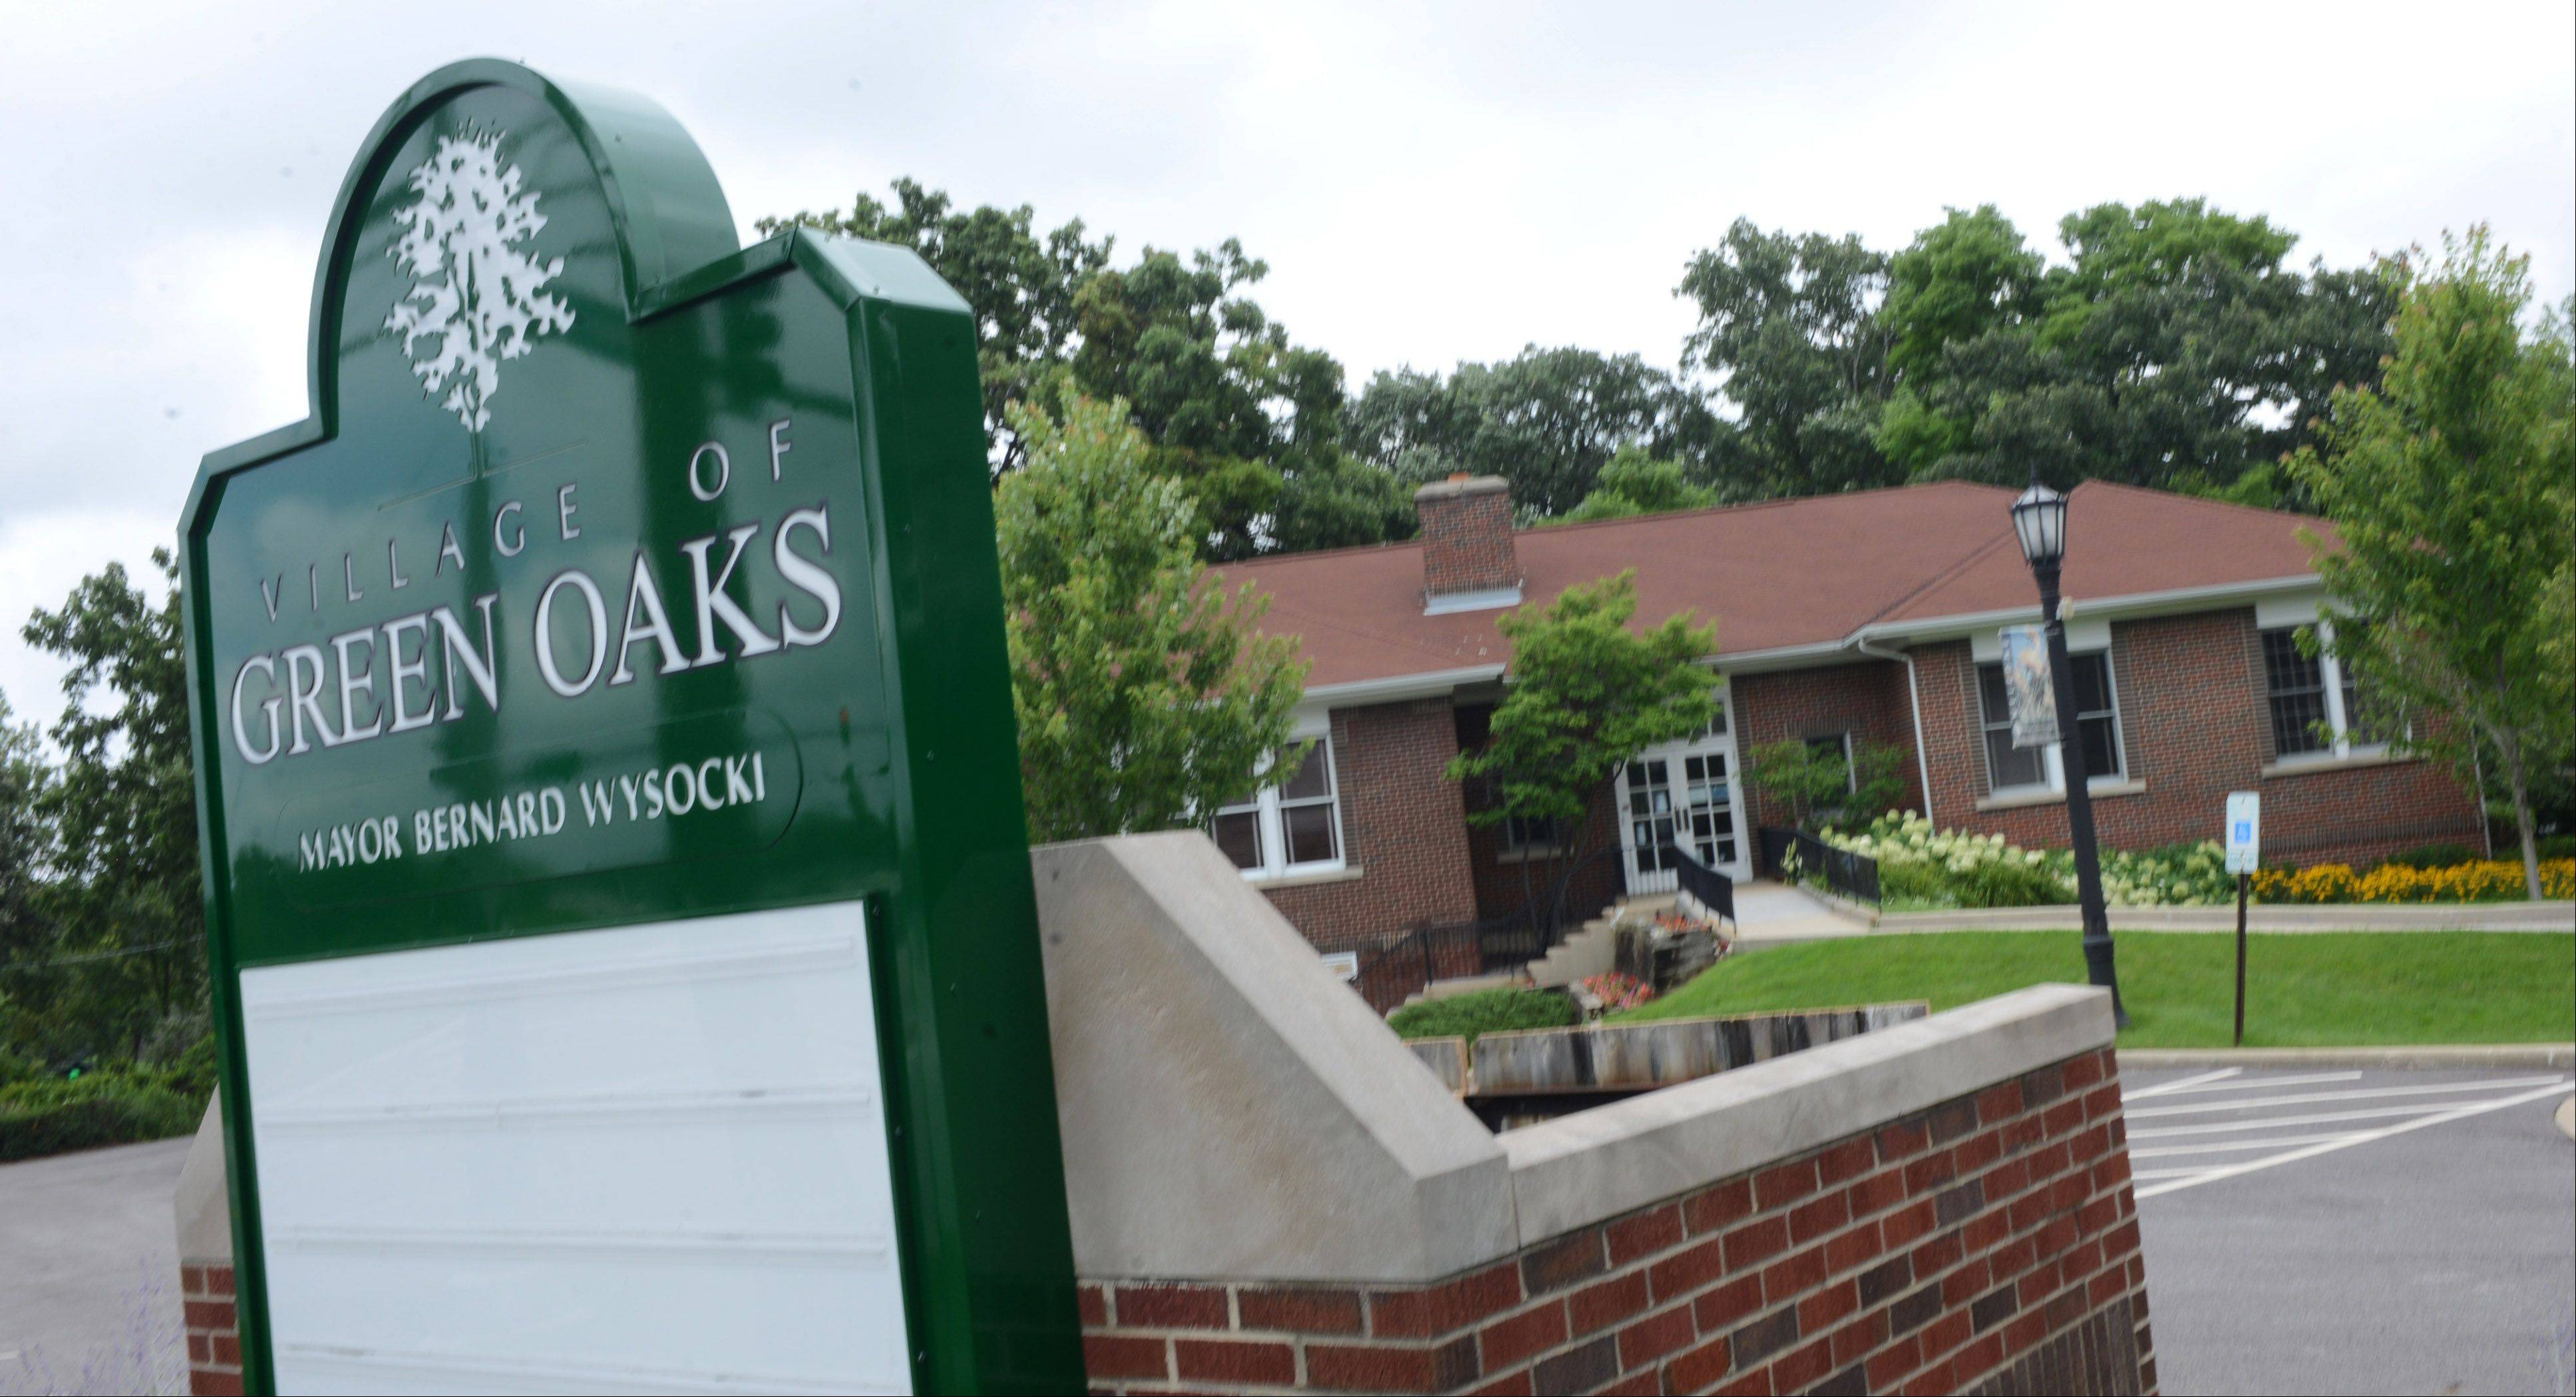 While government accounting guidelines recommend keeping a minimum of two months of operating expenses in reserves, Green Oaks is one of three villages keeping more than two years of expenses in reserves.